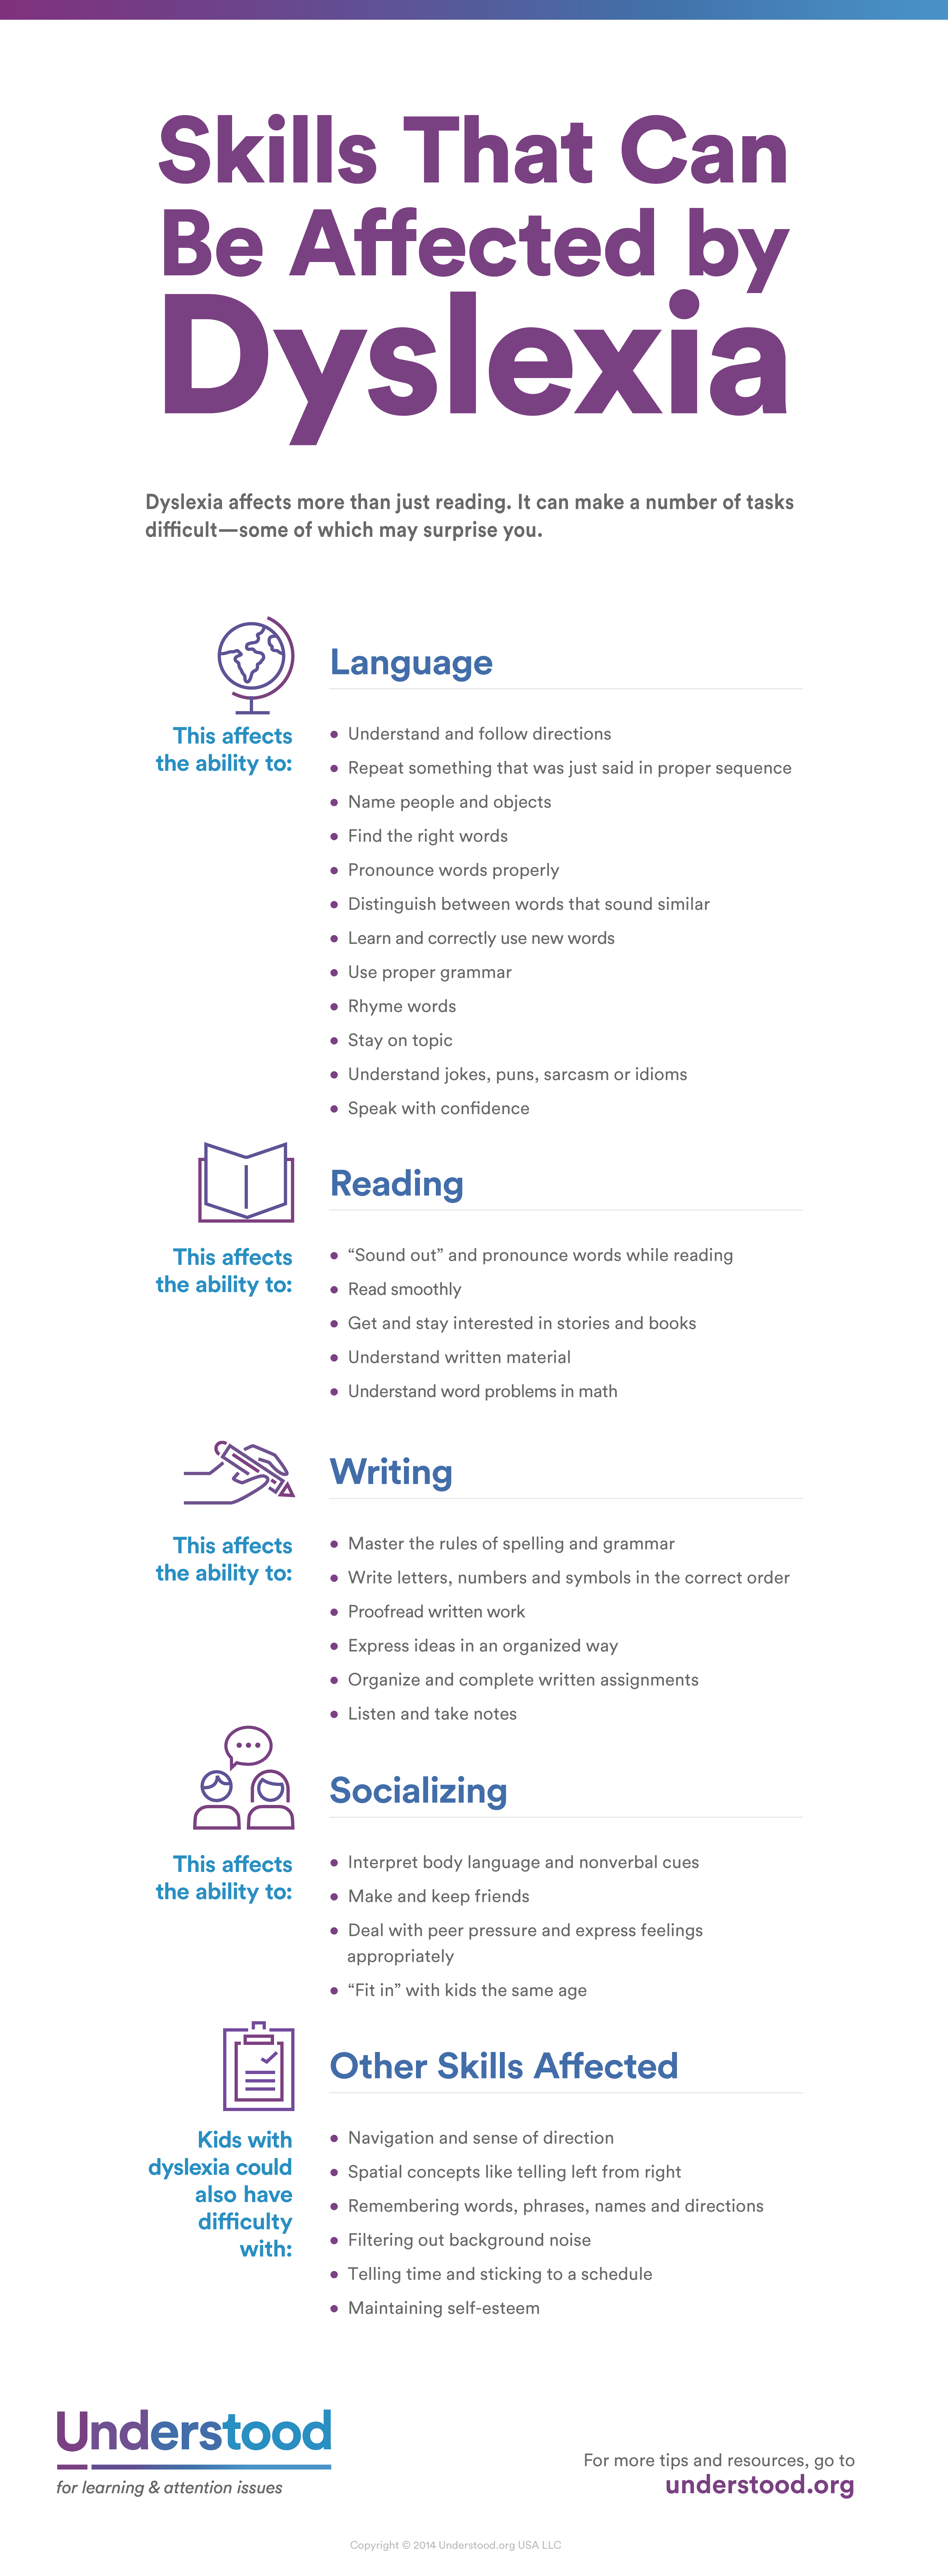 Skills That Can Be Affected By Dyslexia